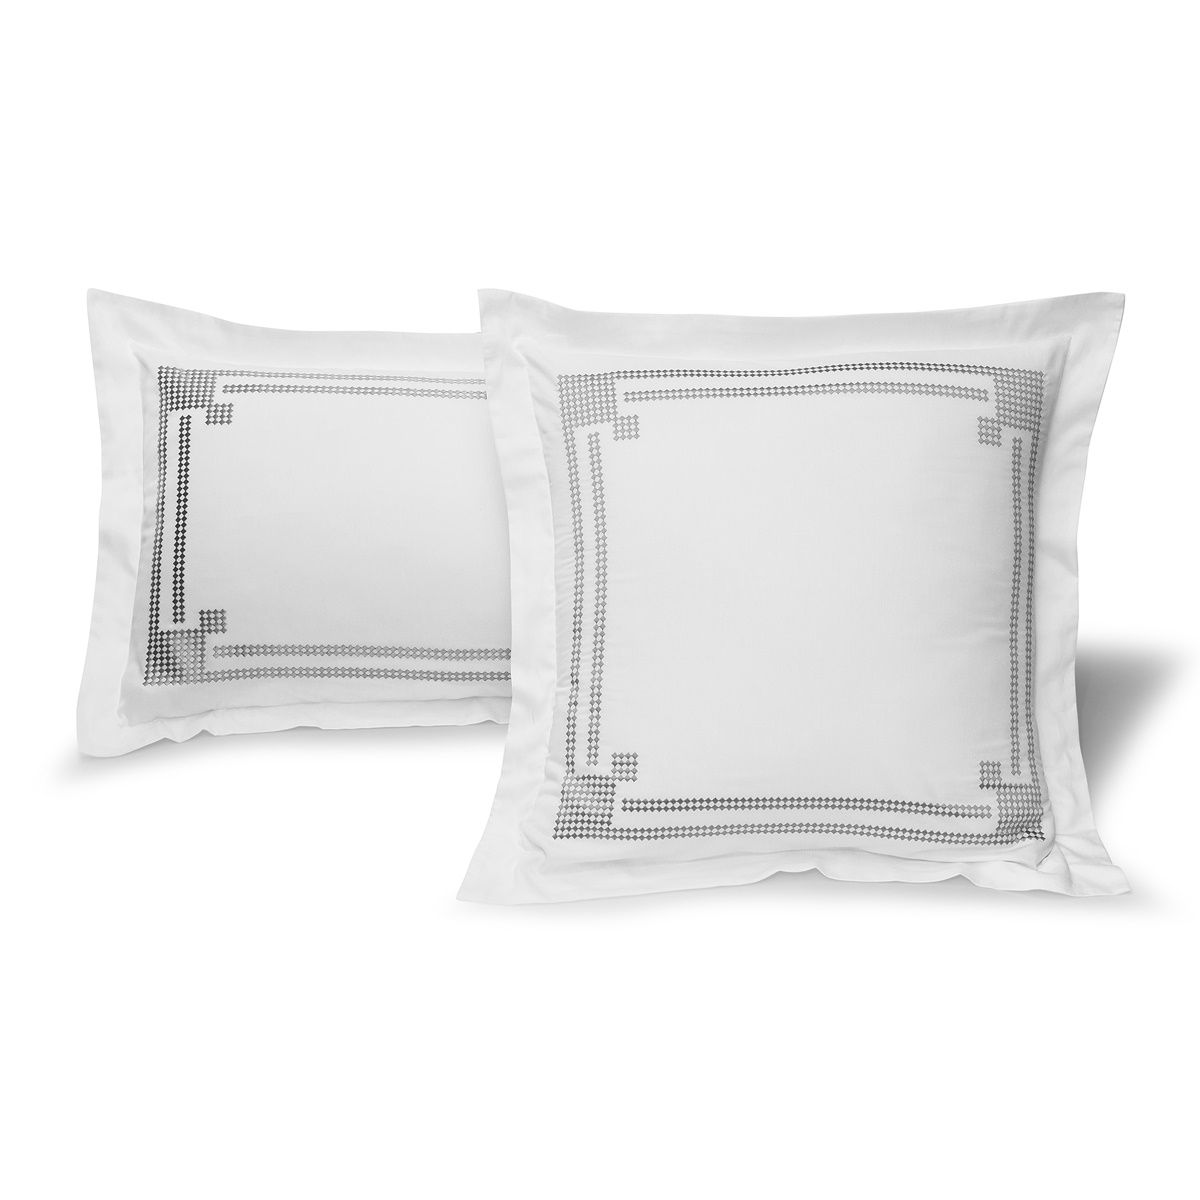 Pillow Case Venise | Bed linen | Tradition des Vosges